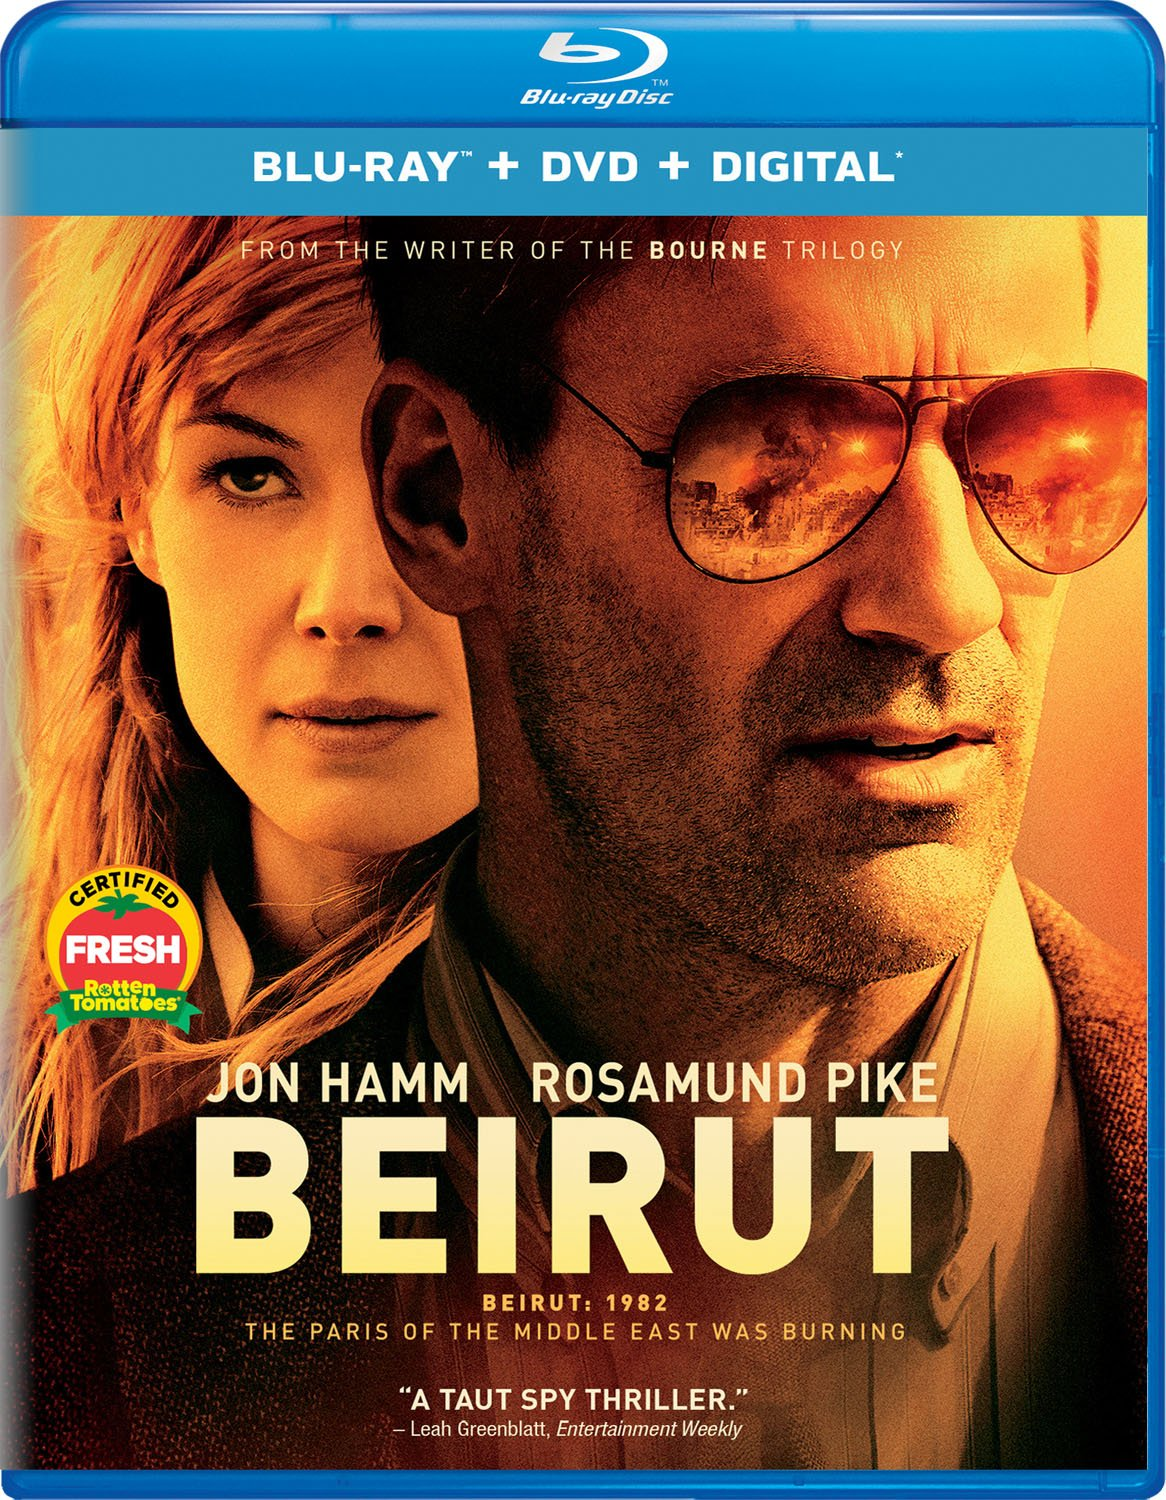 Blu-ray : Beirut (With DVD, 2 Pack, Digital Copy, 2PC)